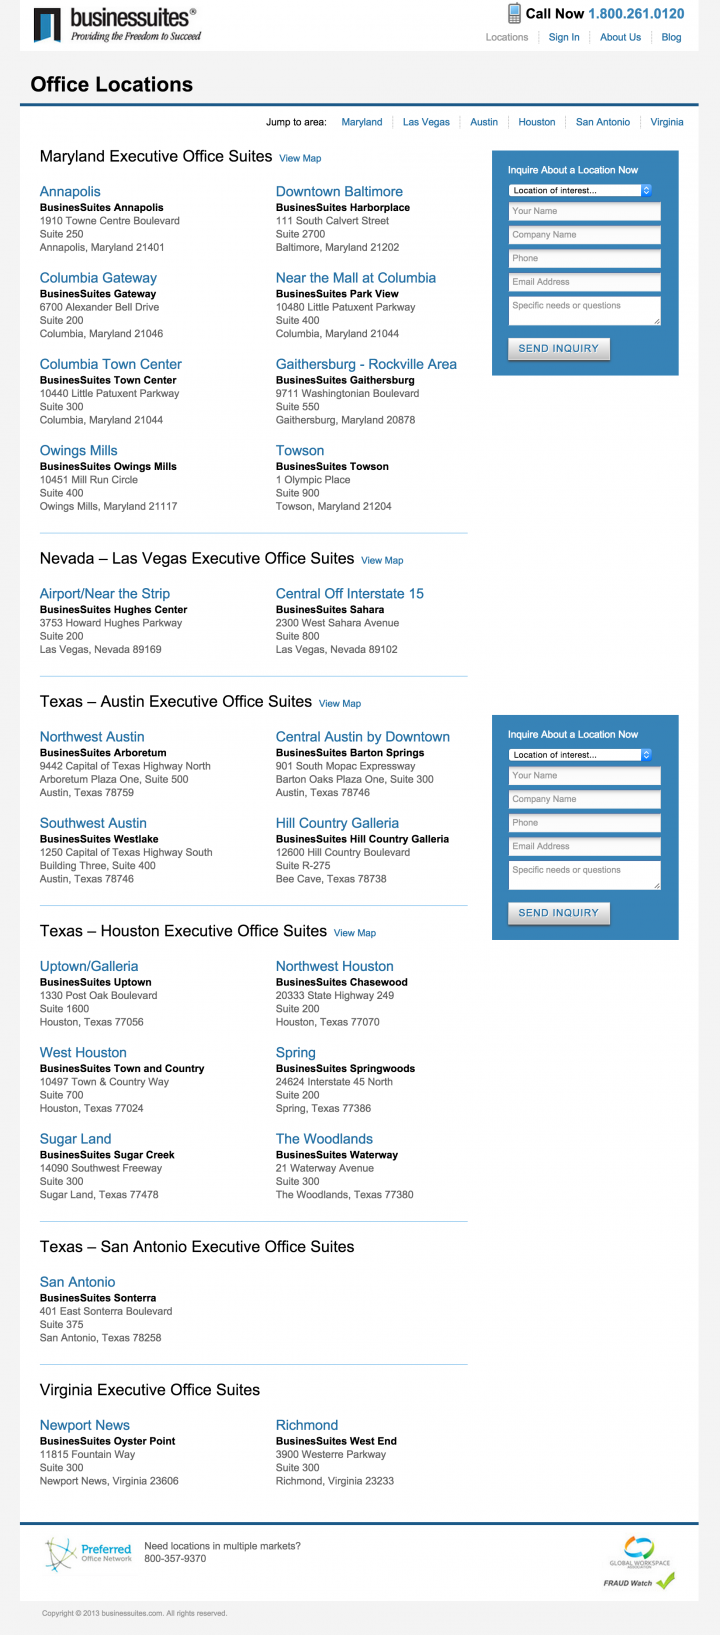 BusinesSuites Office Locations Page